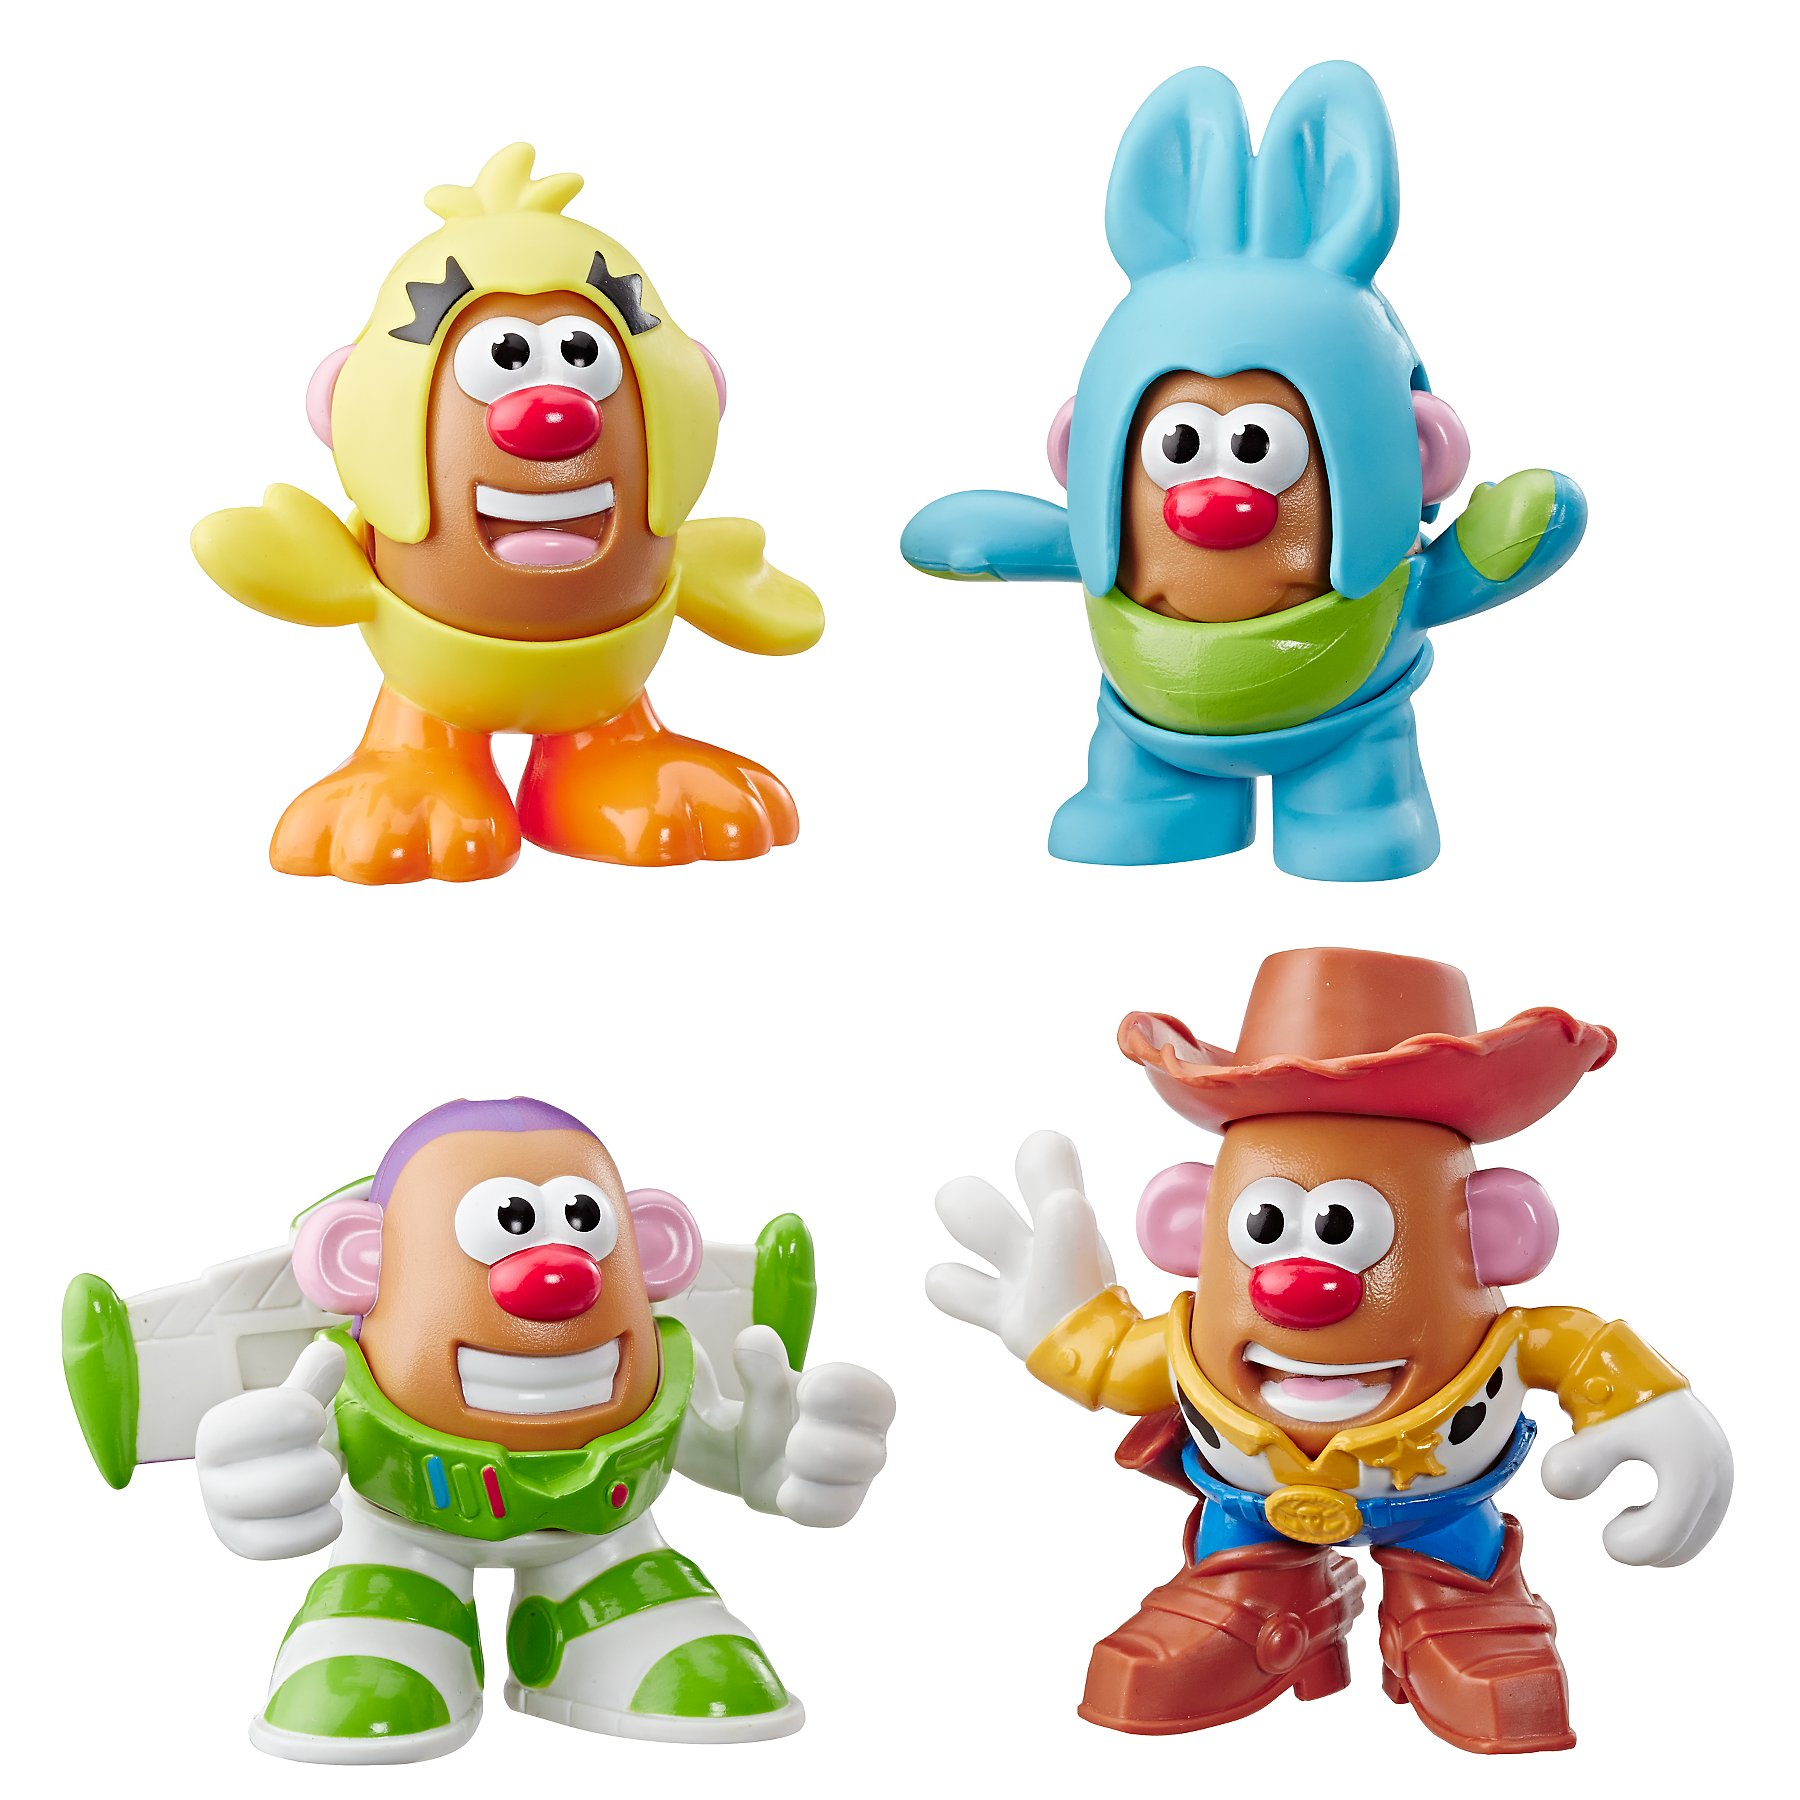 Disney Pixar Toy Story Mini Mr Potato Head 4 Pack